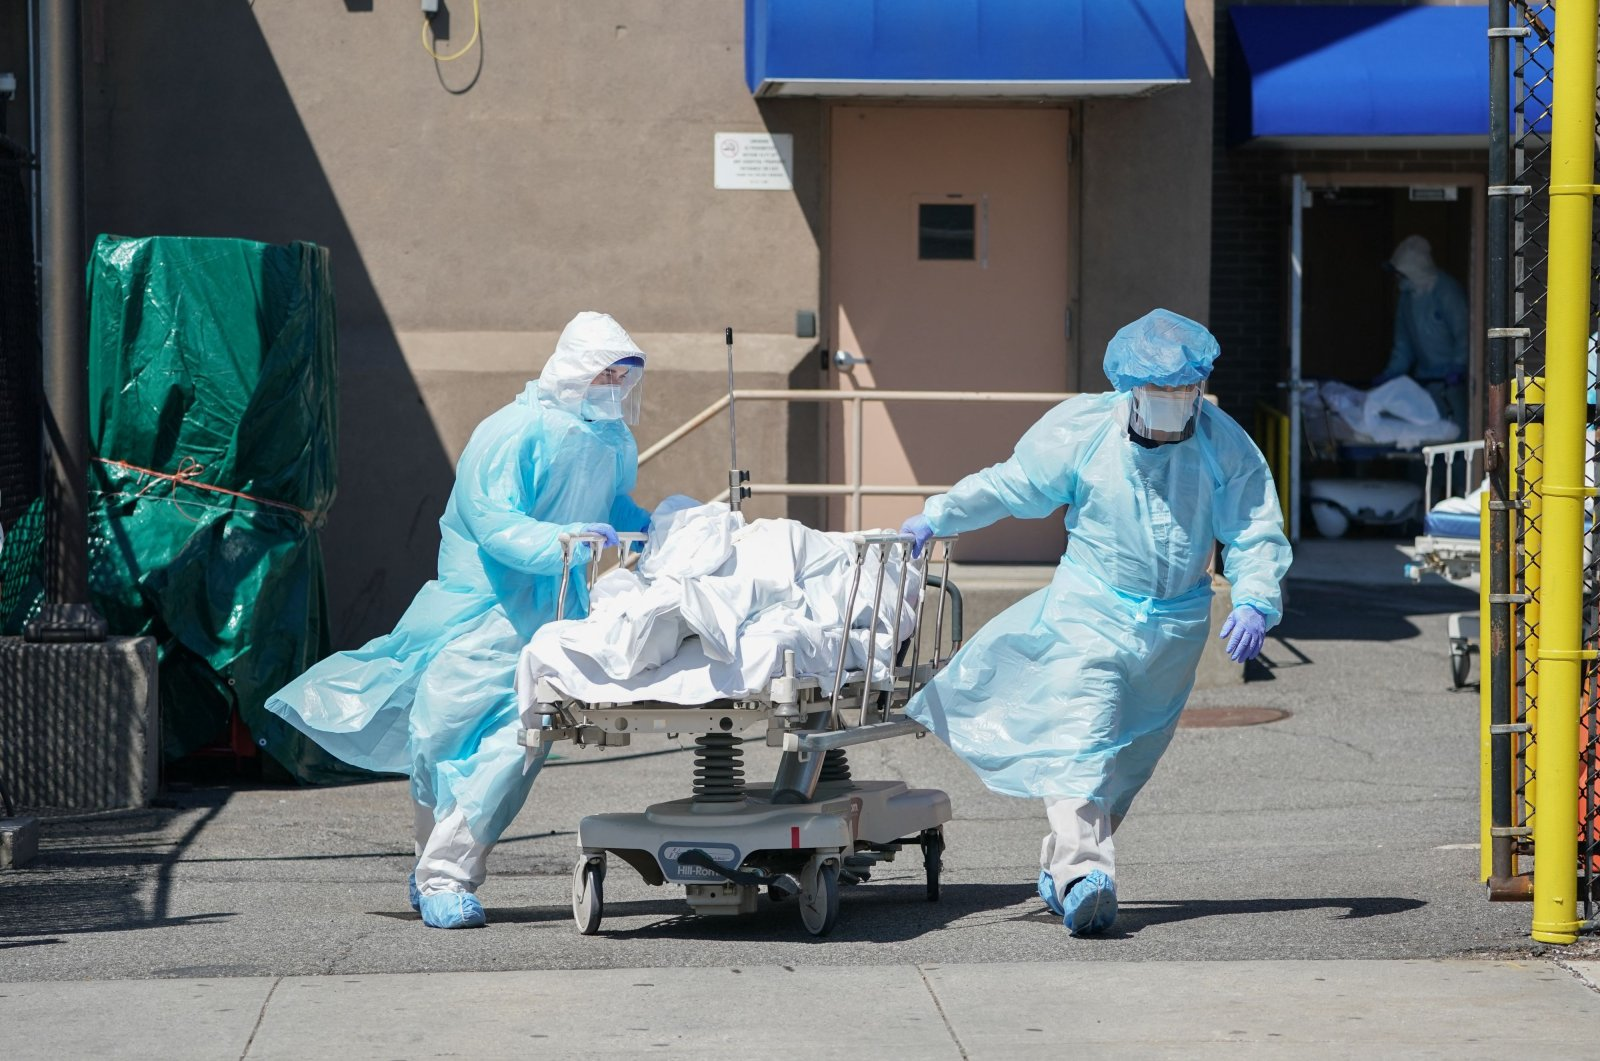 In this file photo, bodies are moved to a refrigeration truck serving as a temporary morgue at Wyckoff Hospital in the Borough of Brooklyn in New York on April 6, 2020. (AFP Photo)